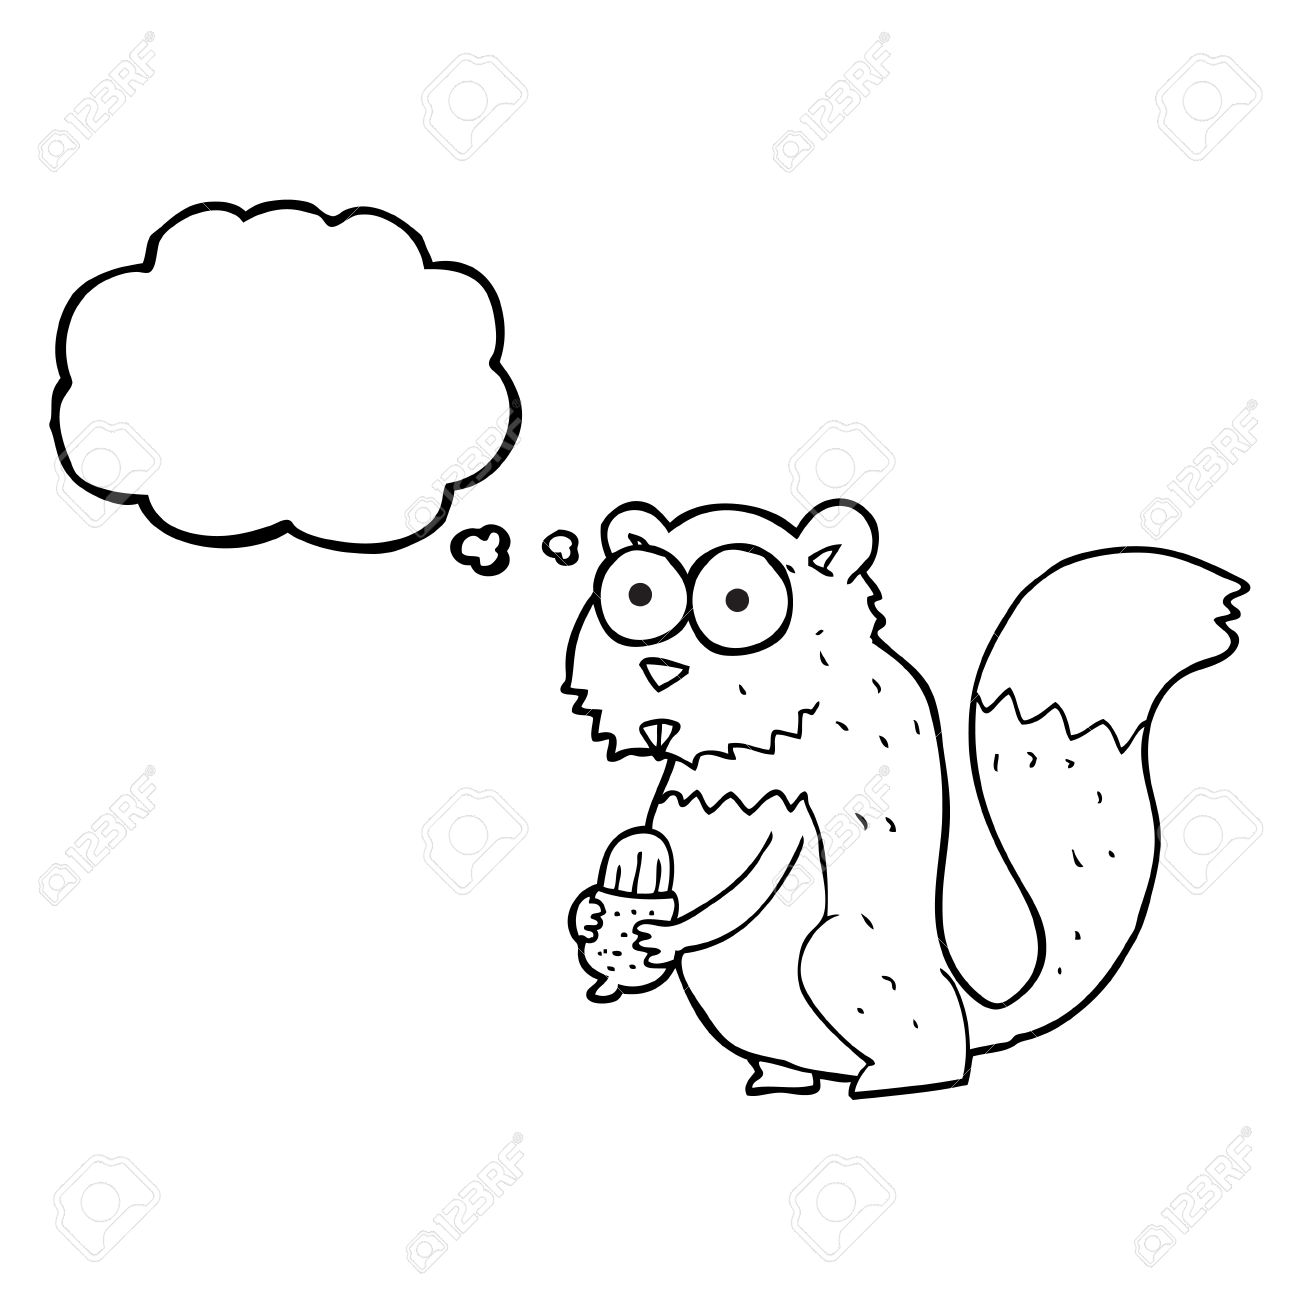 1300x1300 Drawn Squirrel Angry